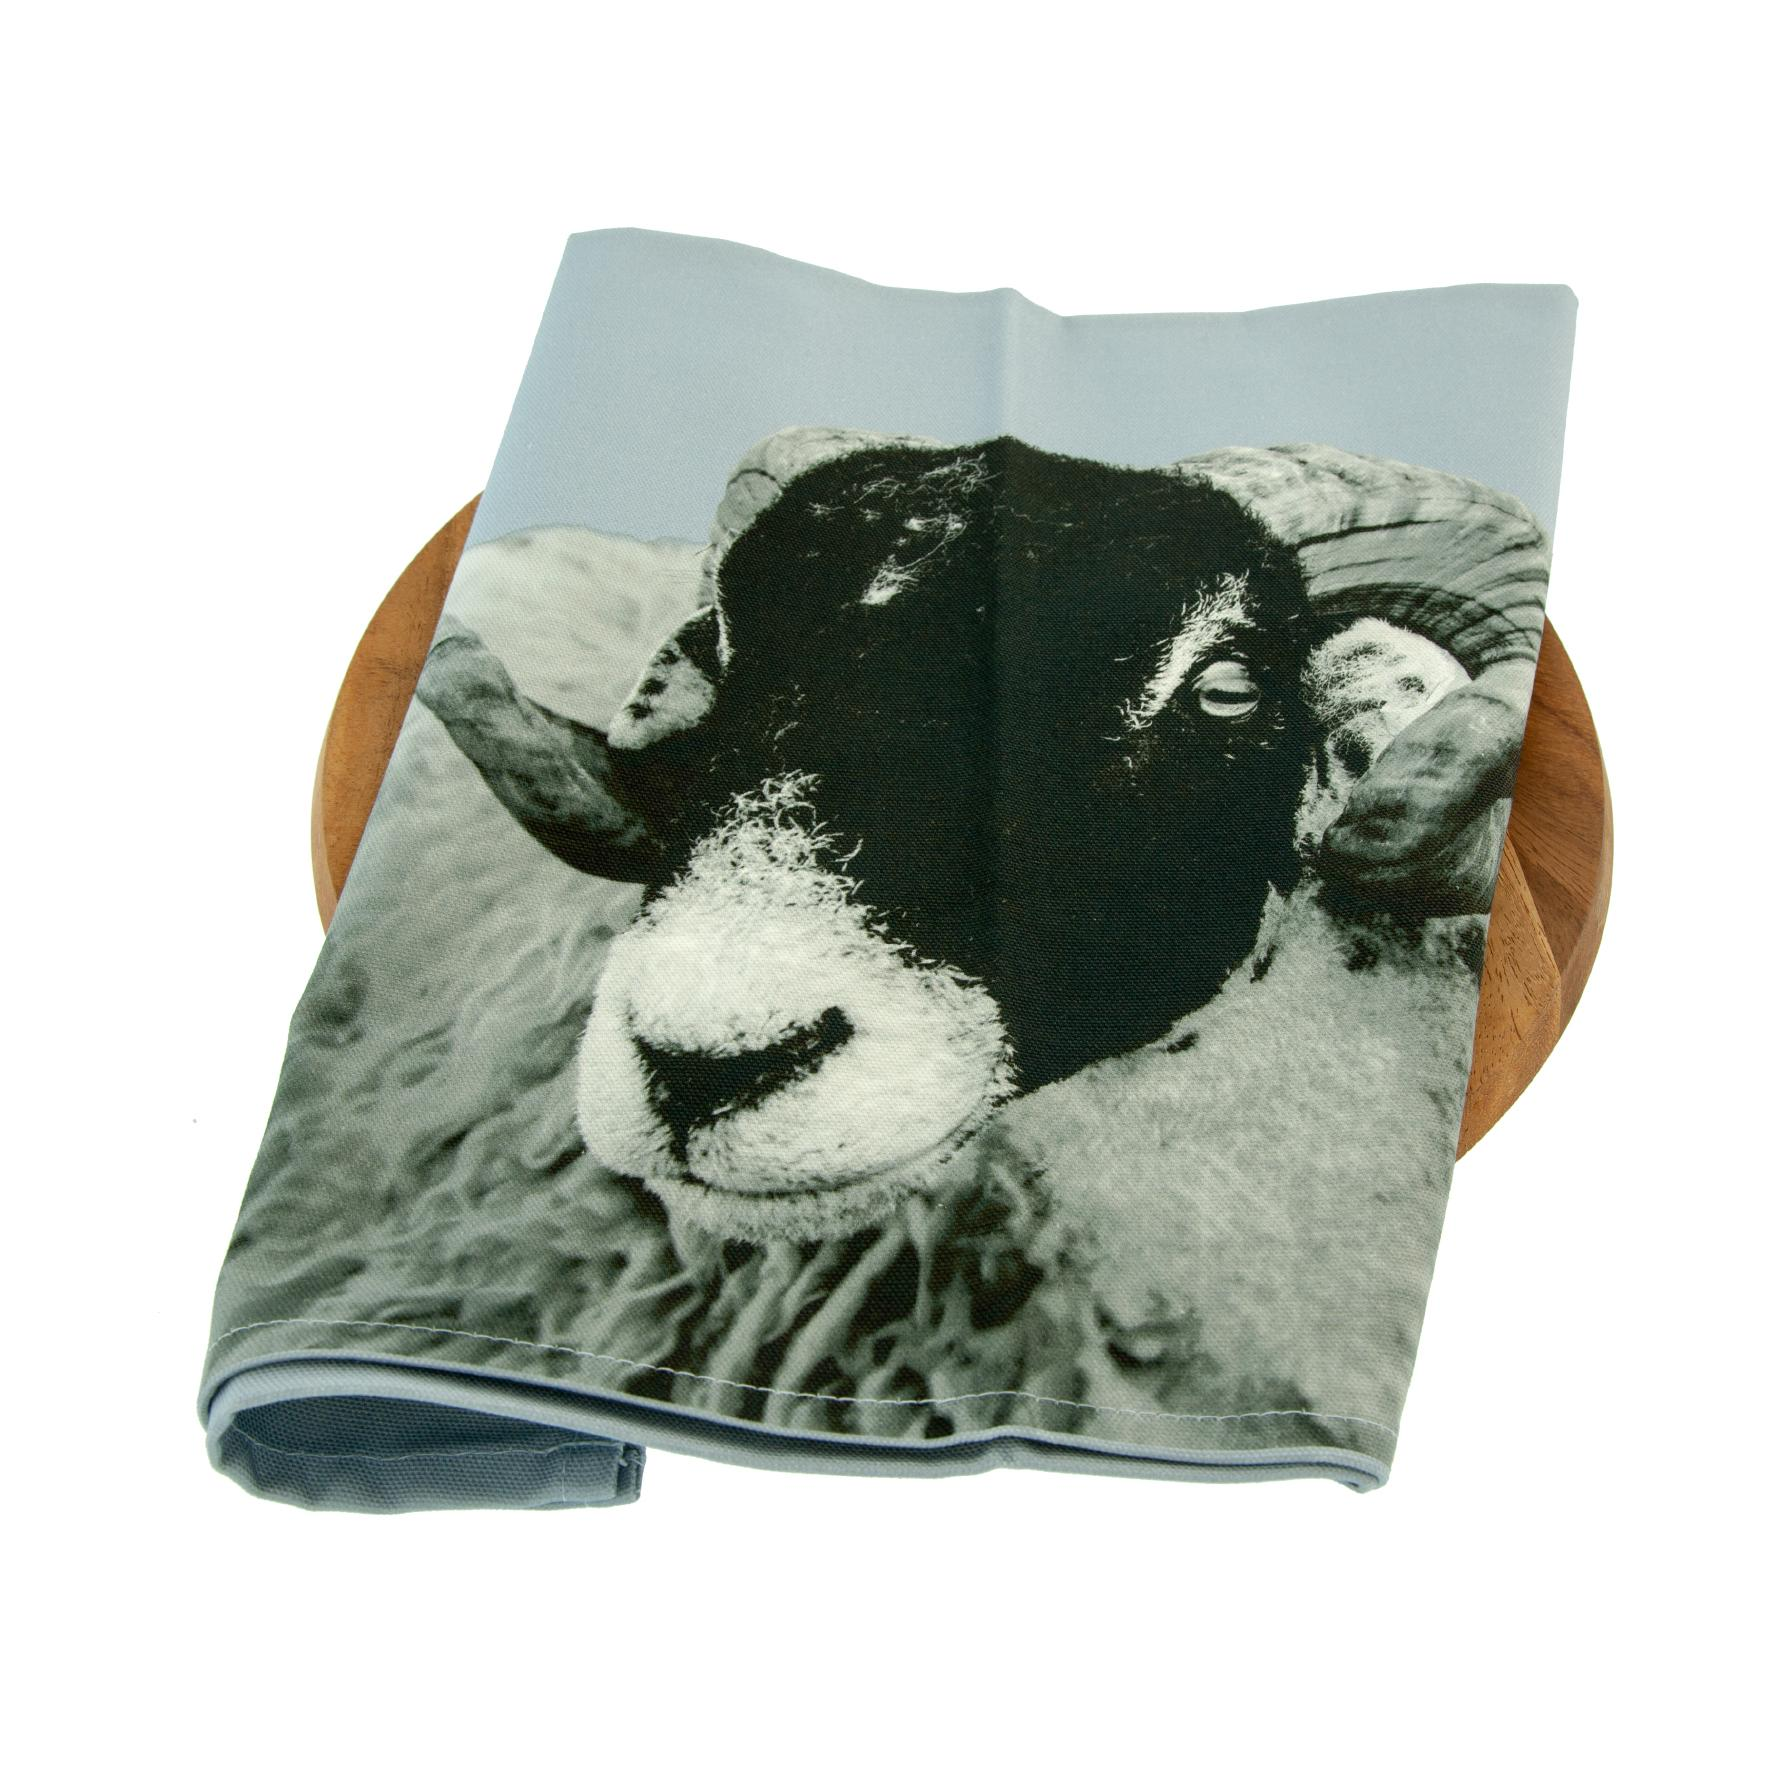 Swaledale sheep on pale grey